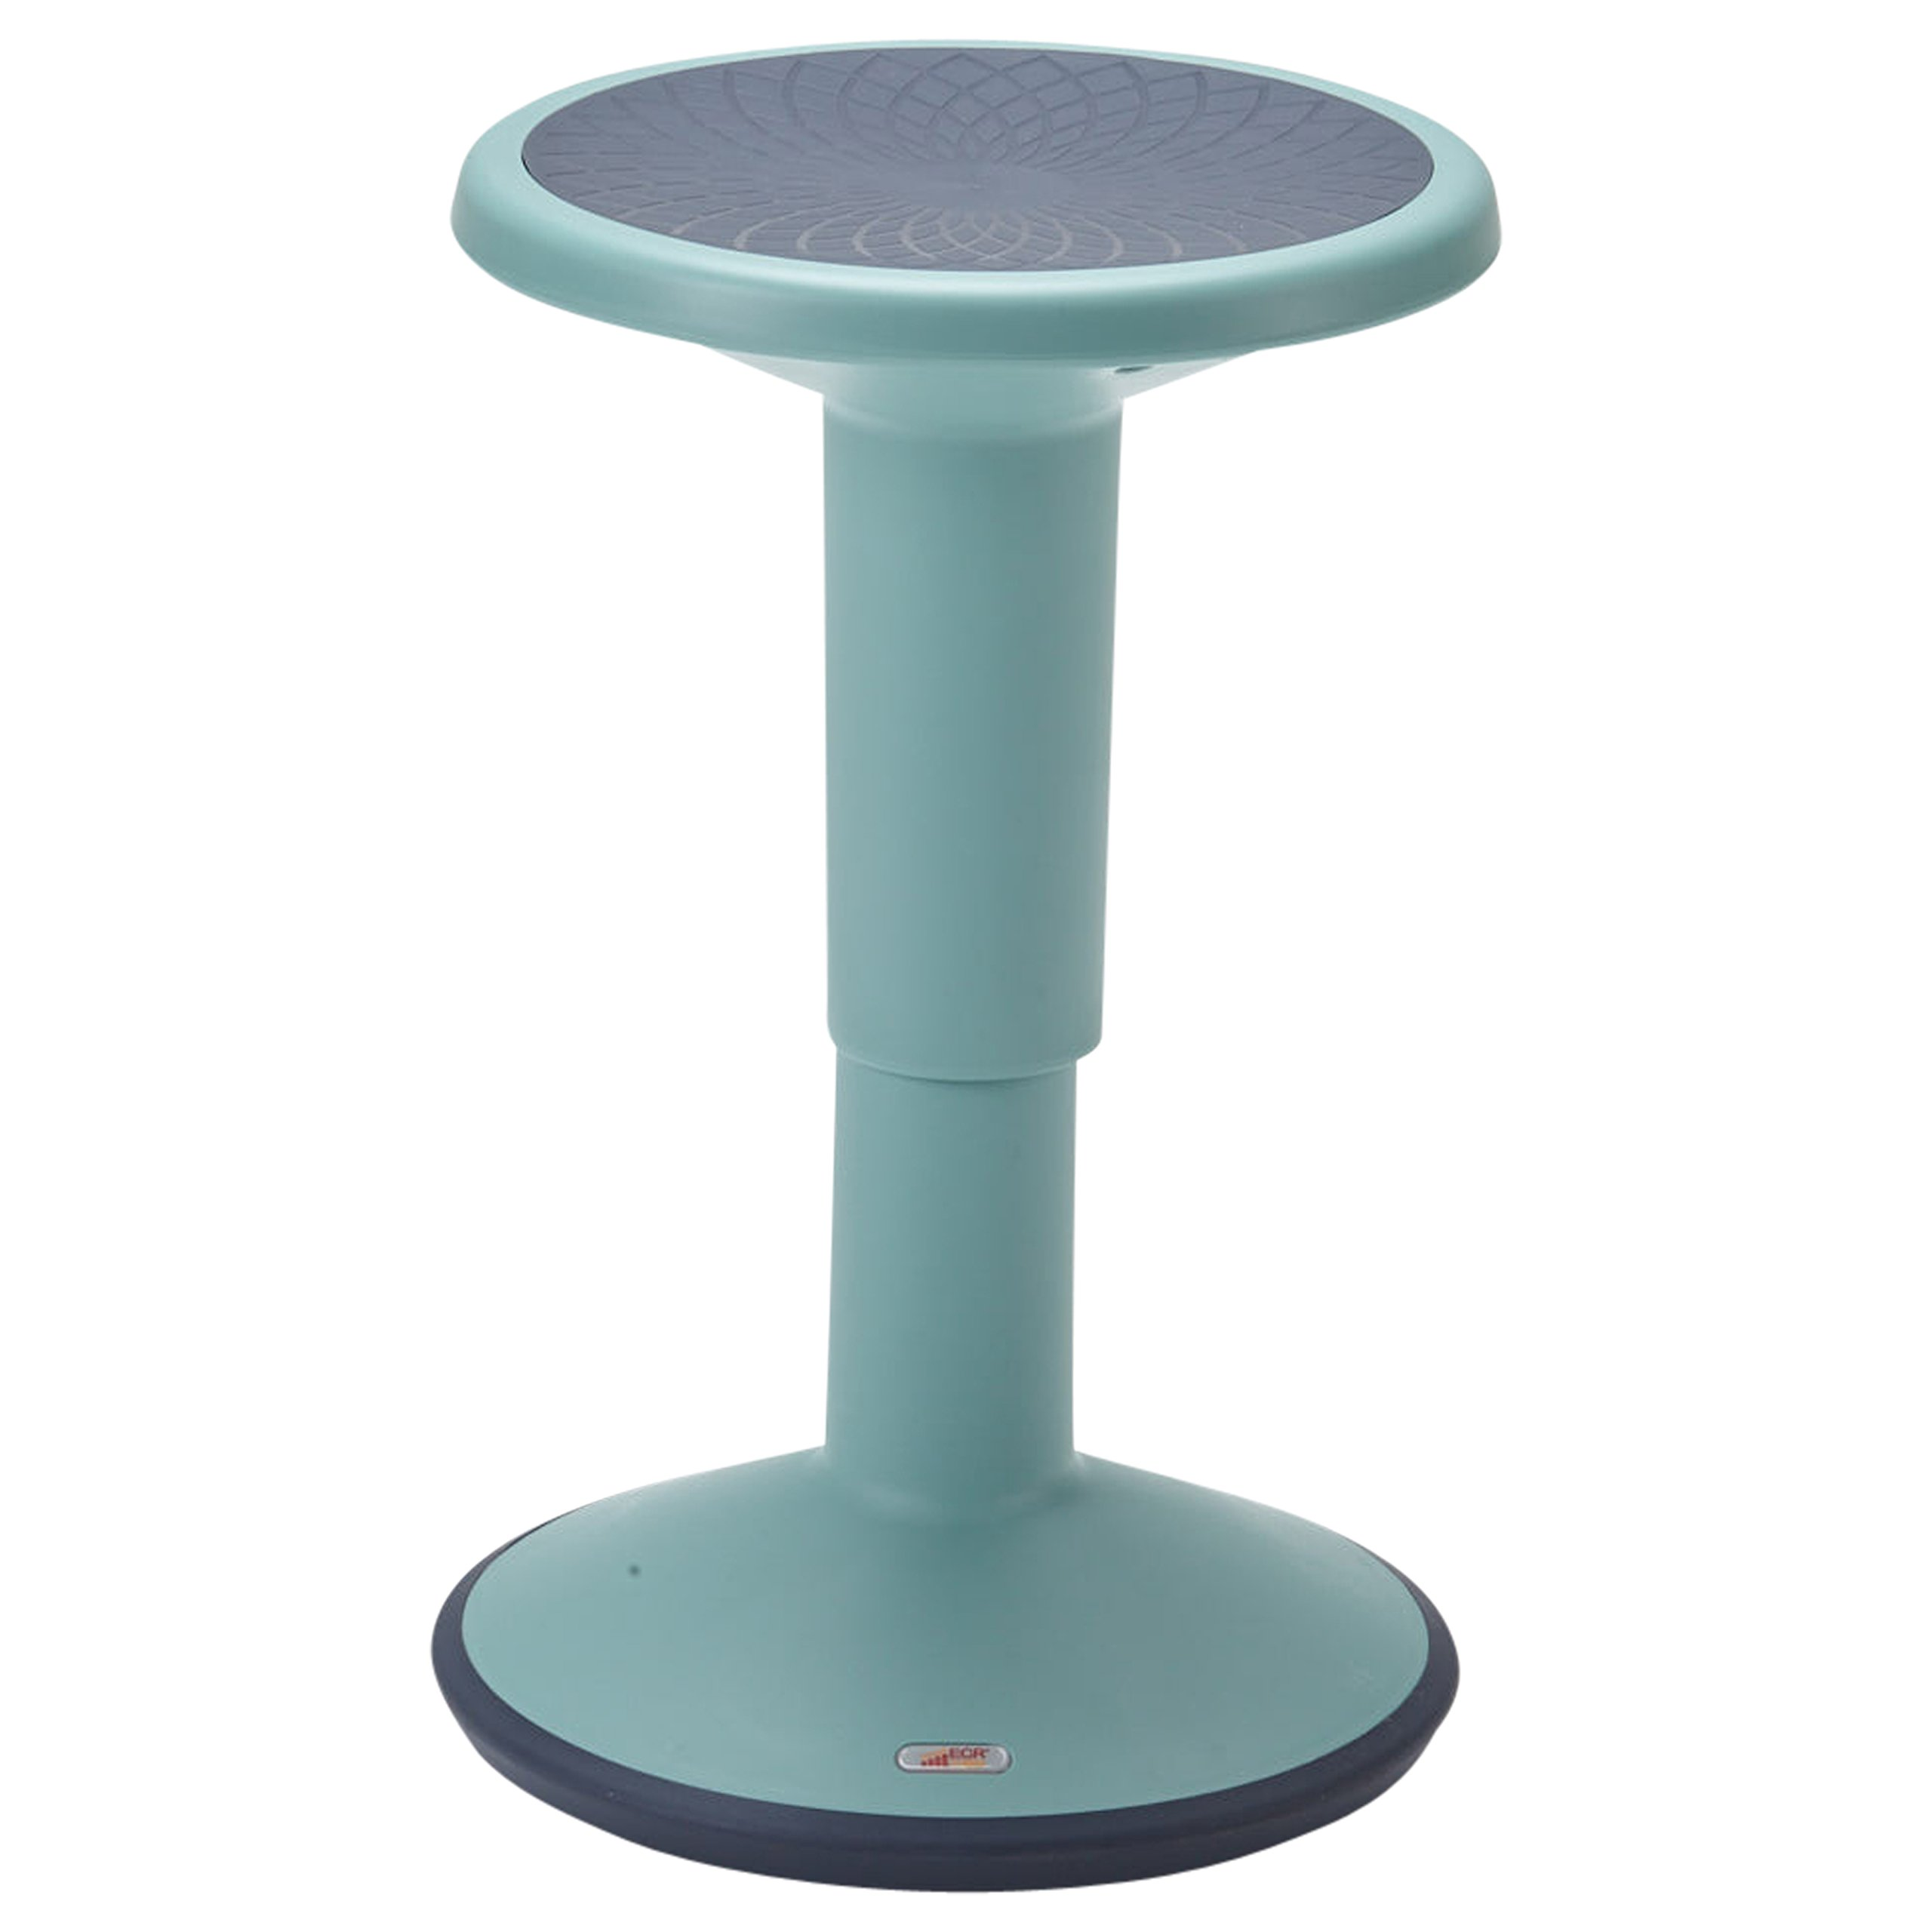 ECR4Kids SitWell Height-Adjustable Wobble Stool - Active Flexible Seating Chair for Kids and Adults - School and Office Sea Foam by ECR4Kids